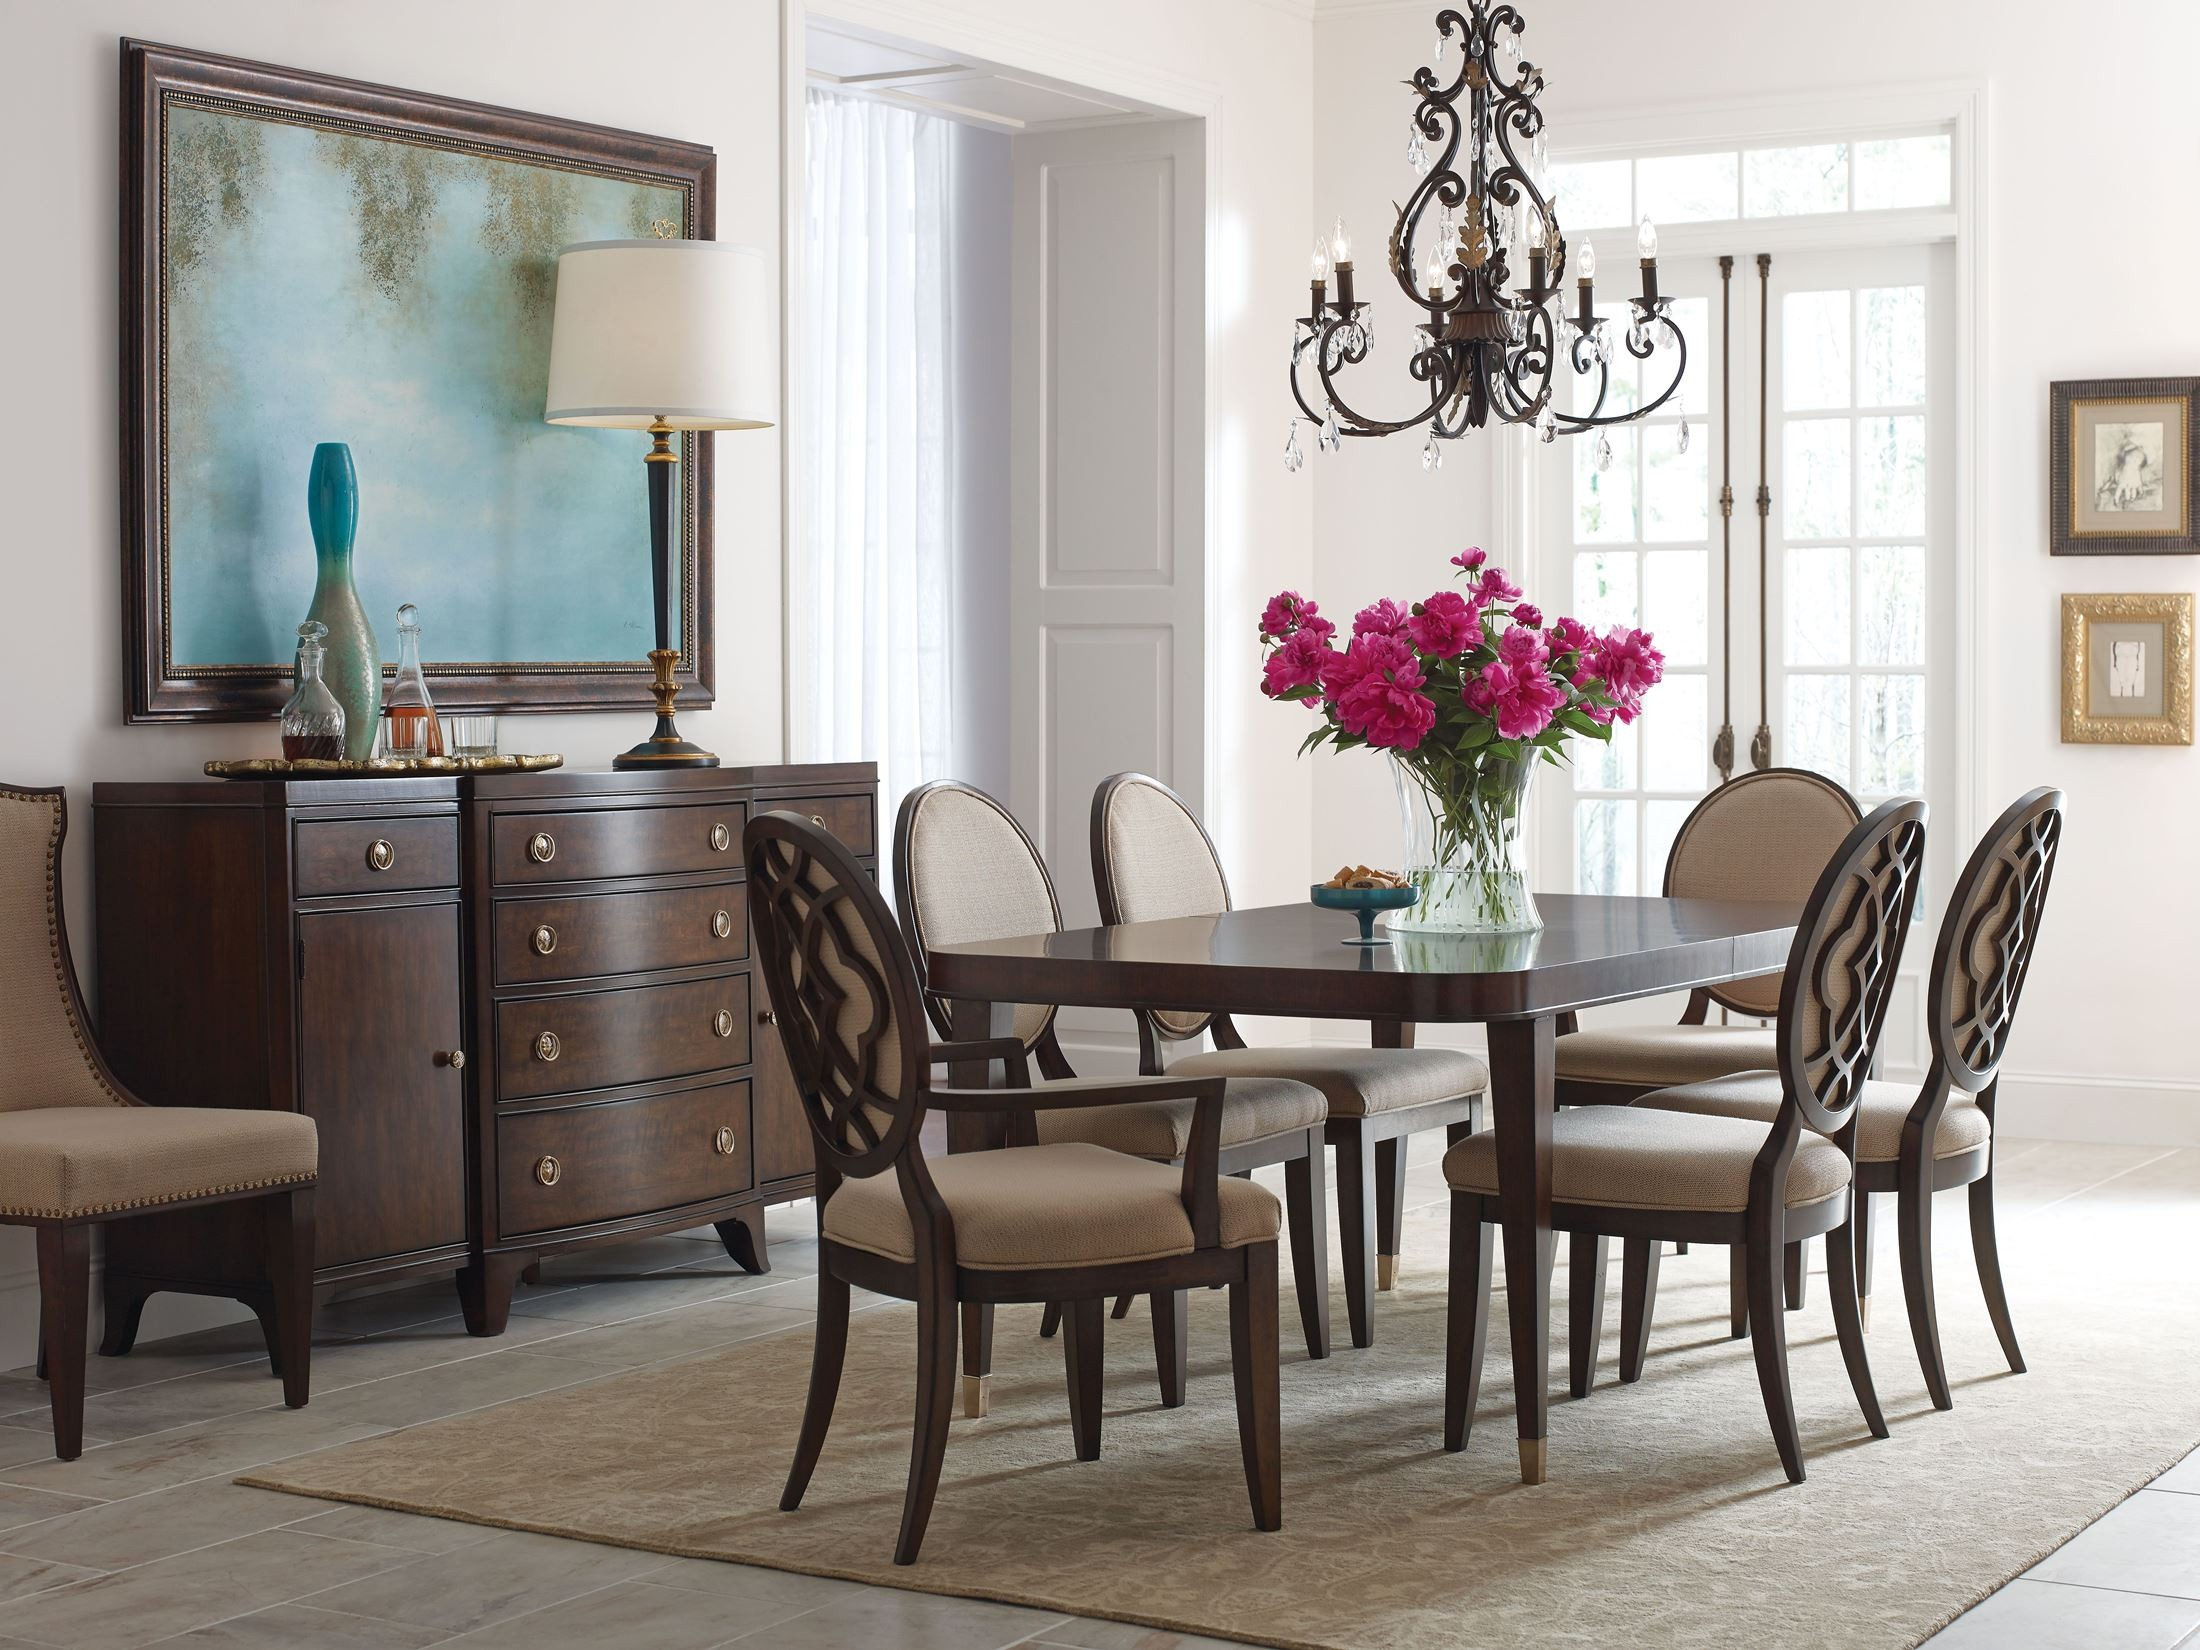 Dining Sets Oakleigh Living And Dining: Grantham Hall Deep Dining Room Set From American Drew (512